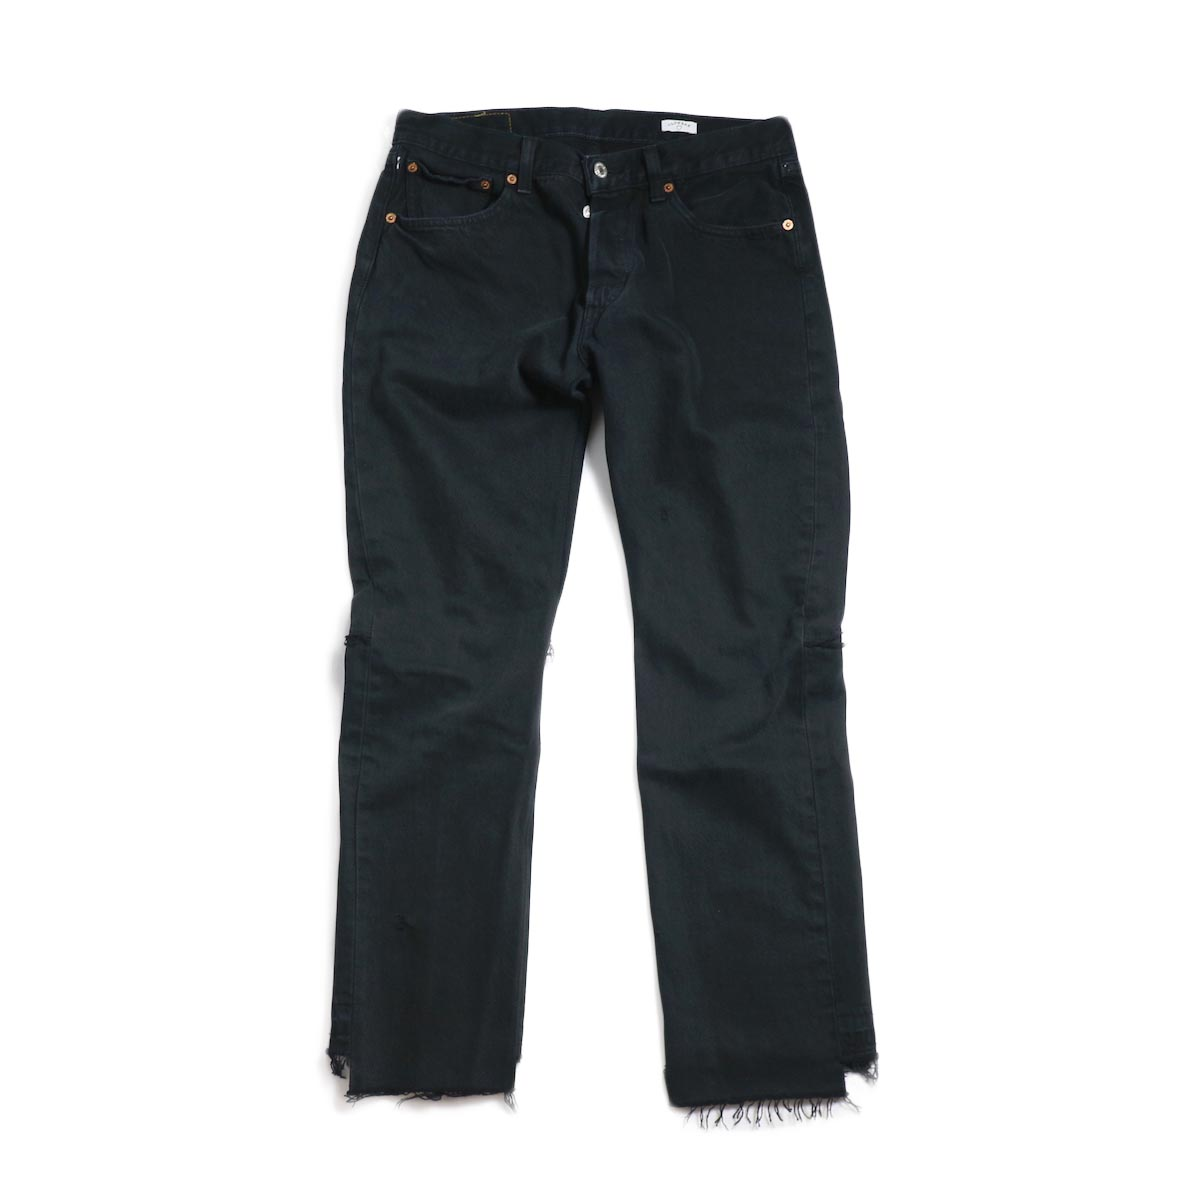 OLD PARK / Back Flare Jeans -Black Msize (B)